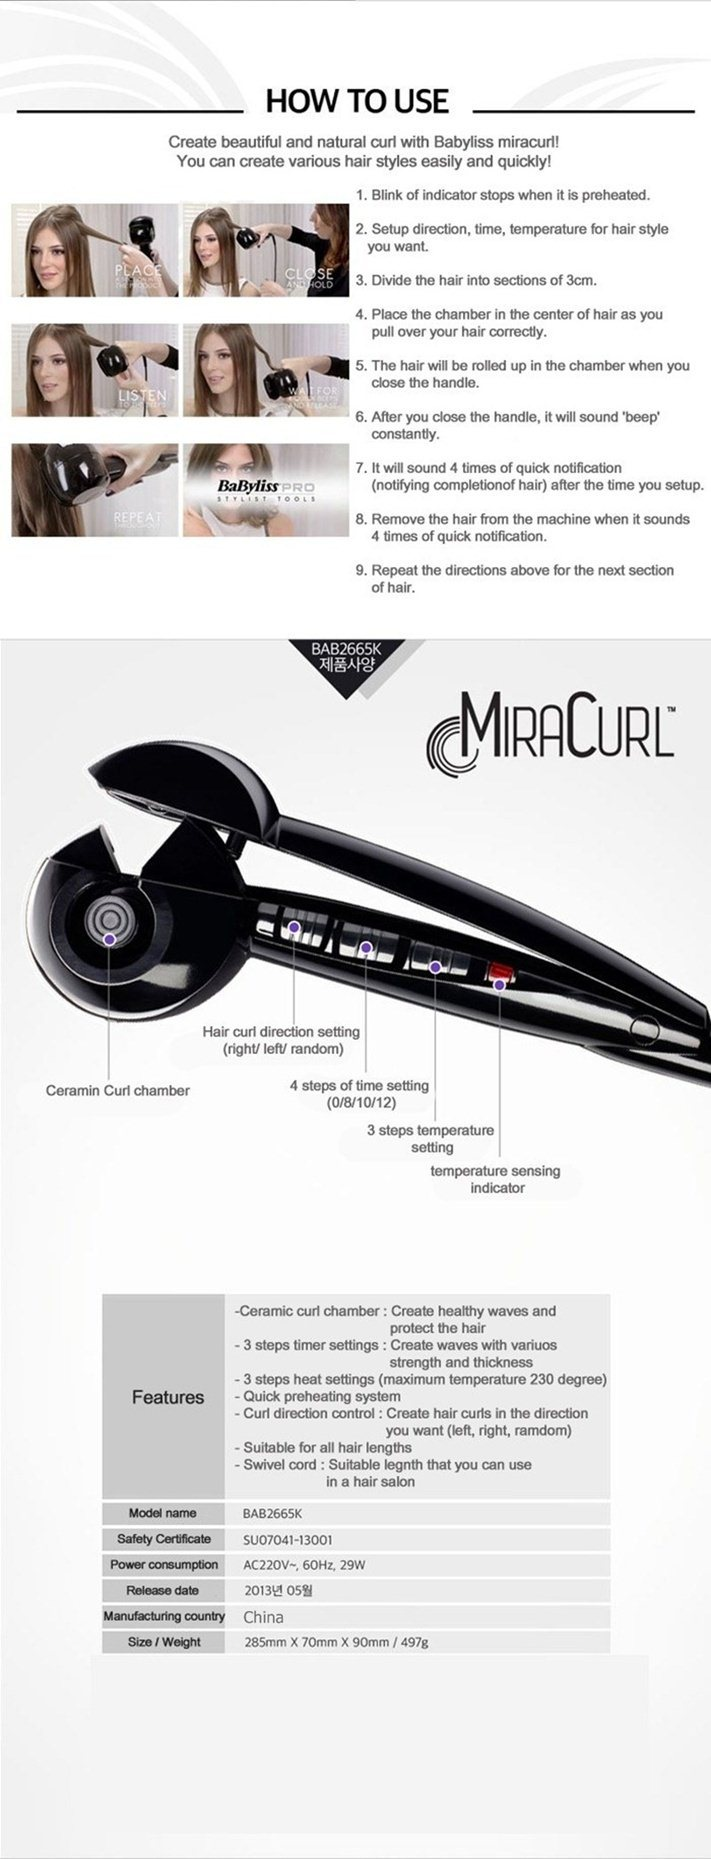 Hair Curl Pro Curling Babyliss Miracurl Curler Iron